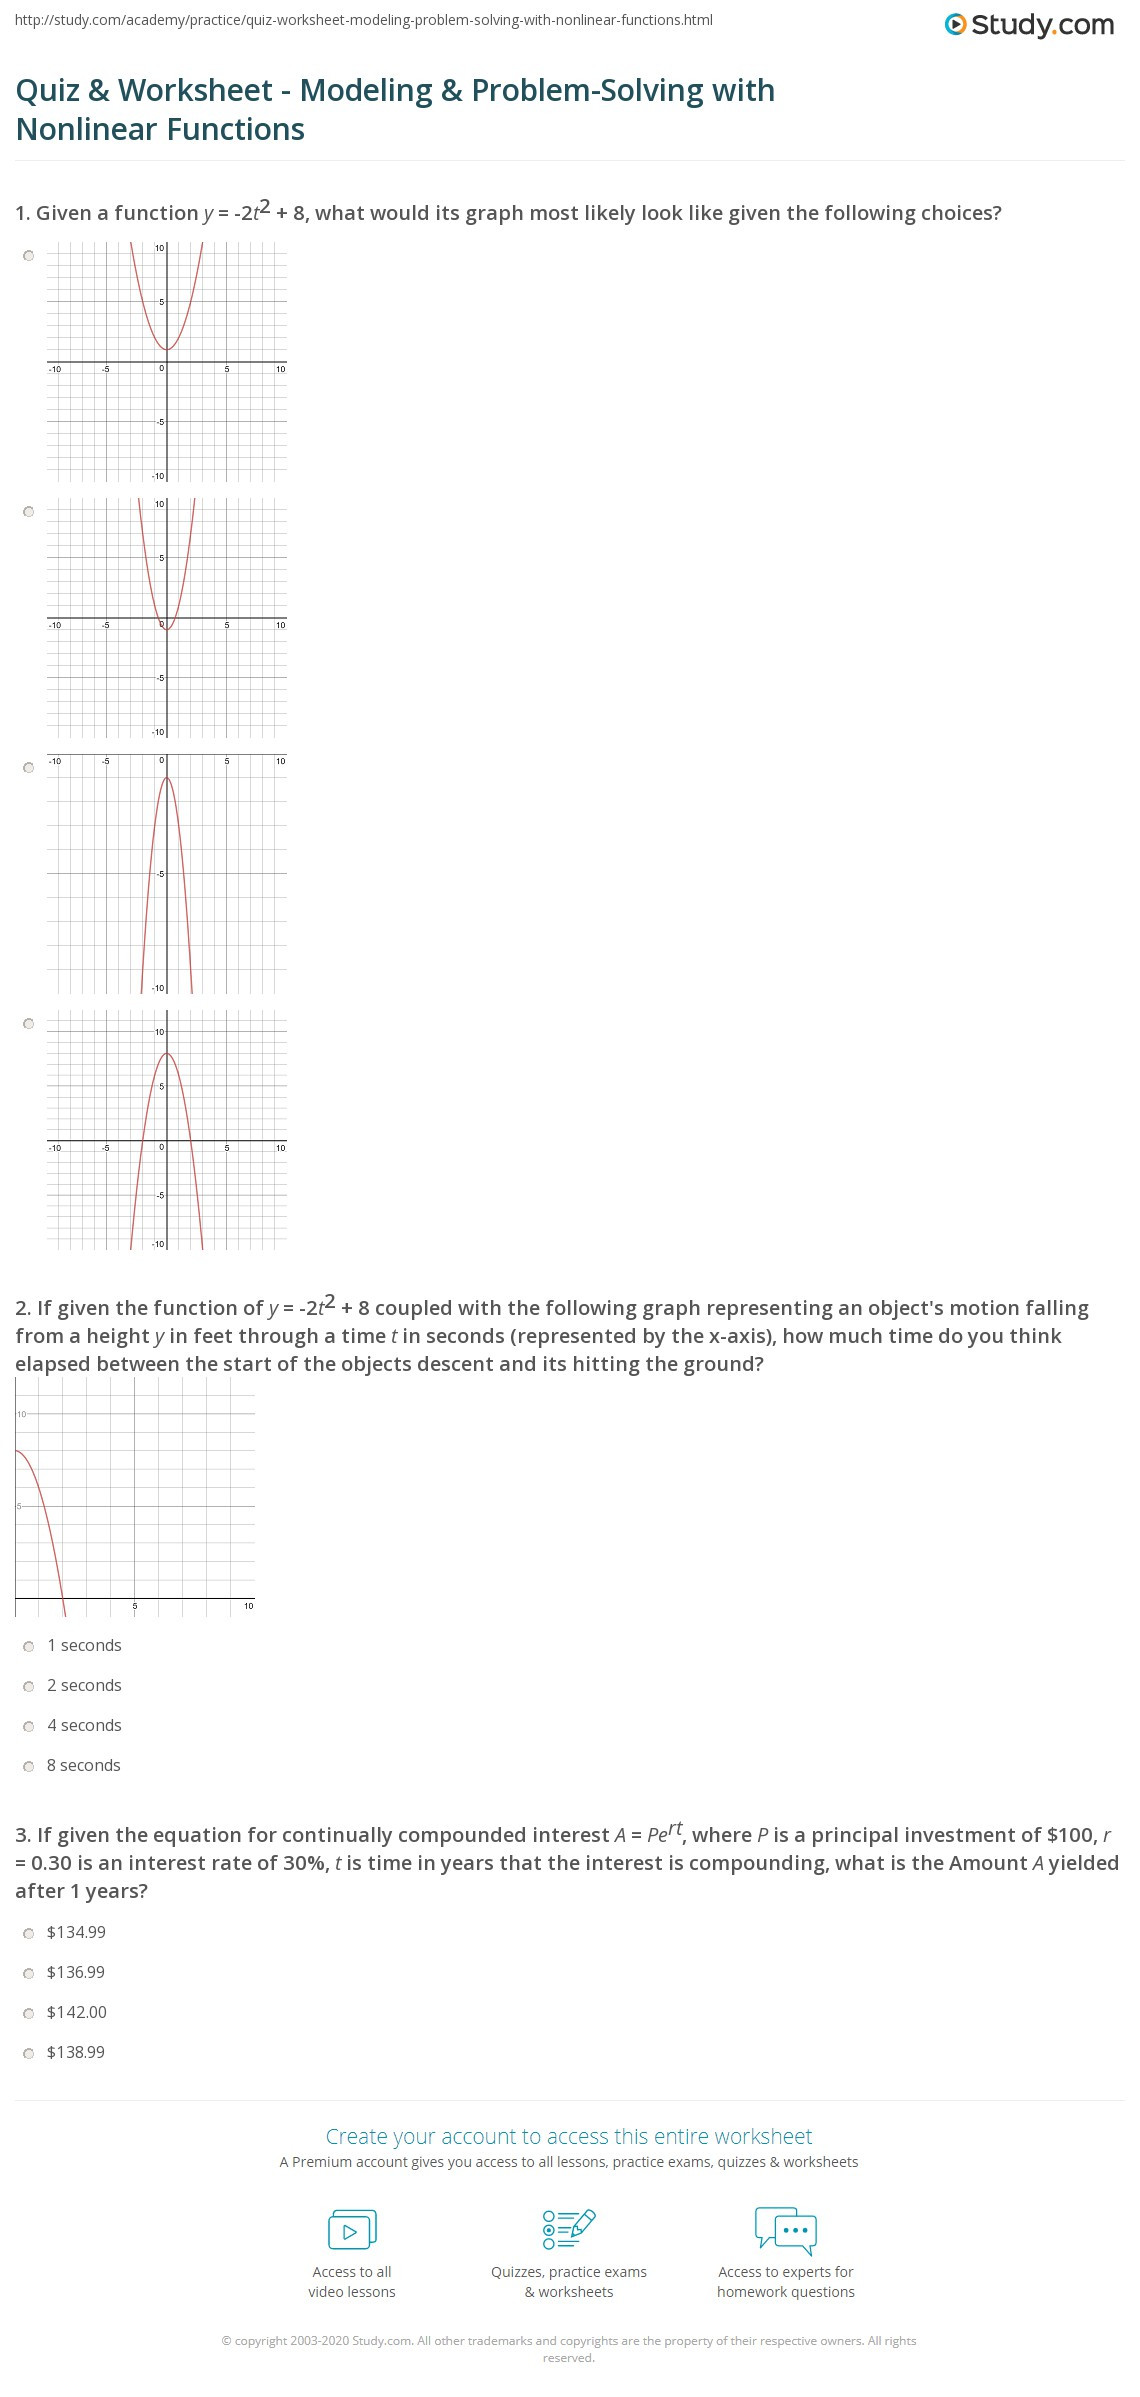 Linear and Nonlinear Functions Worksheet Quiz & Worksheet Modeling & Problem solving with Nonlinear